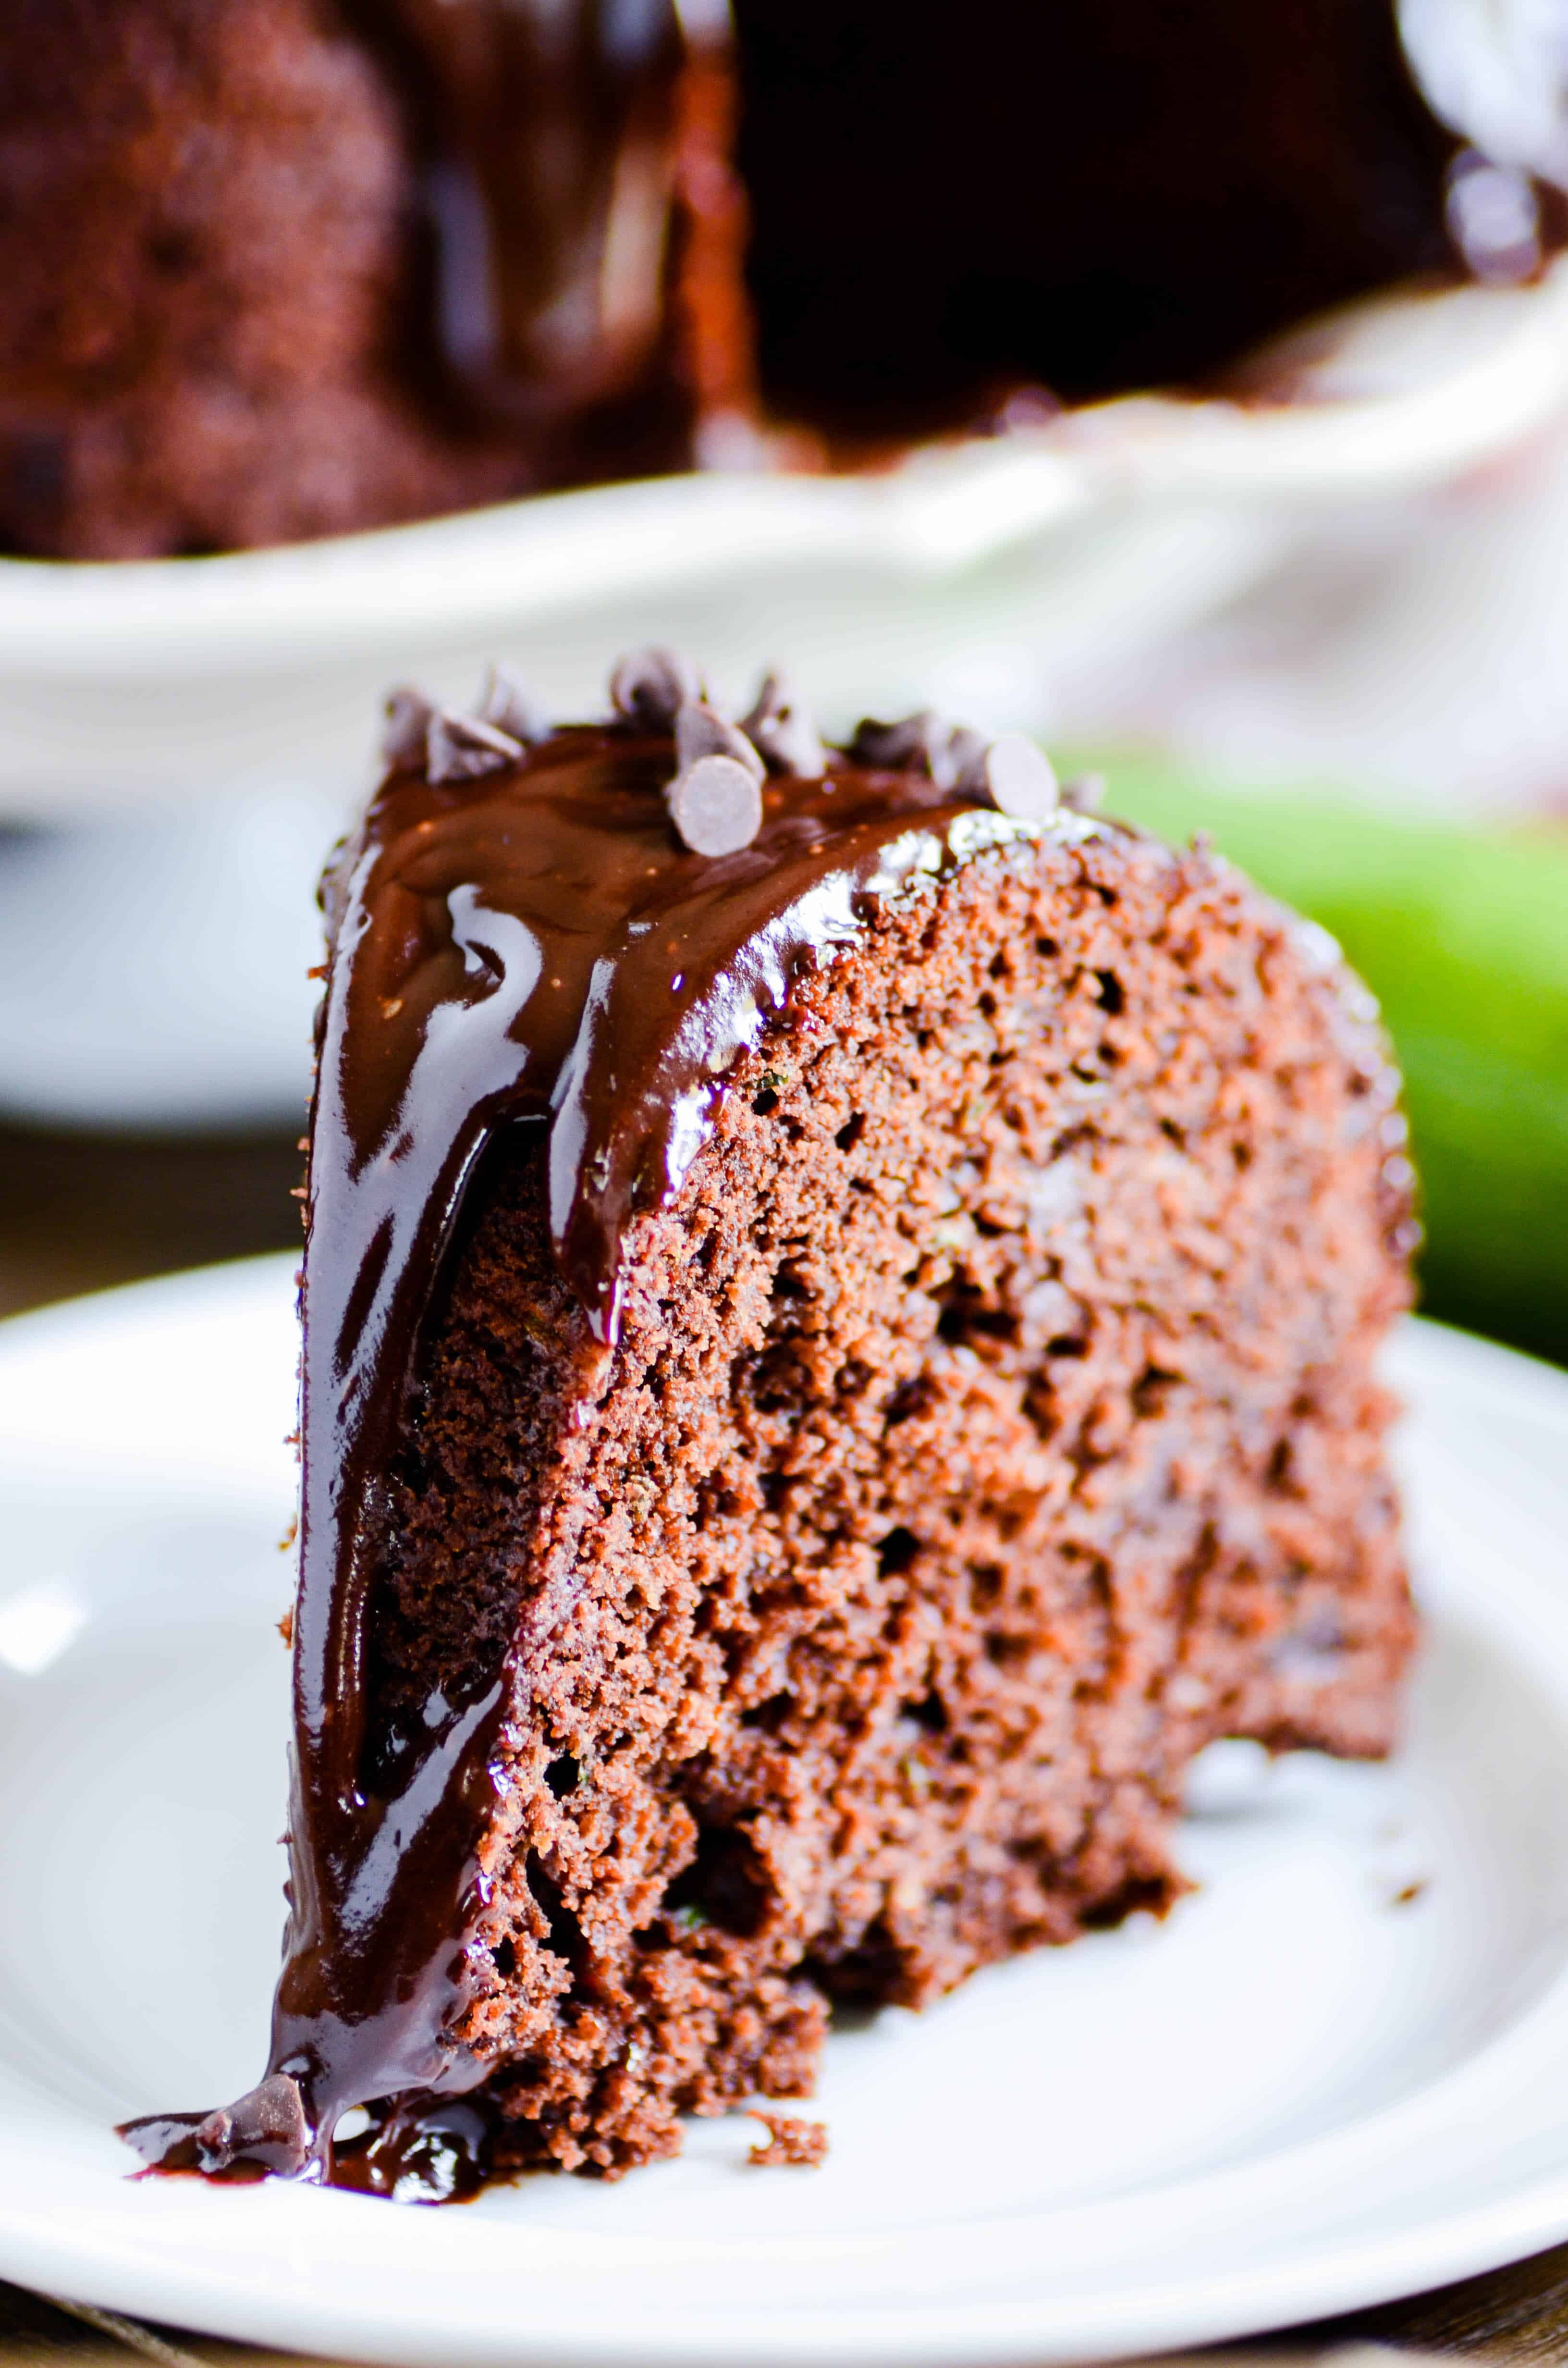 Rich and moist chocolate zucchini cake with chocolate chips and a decadent chocolate ganache on top!